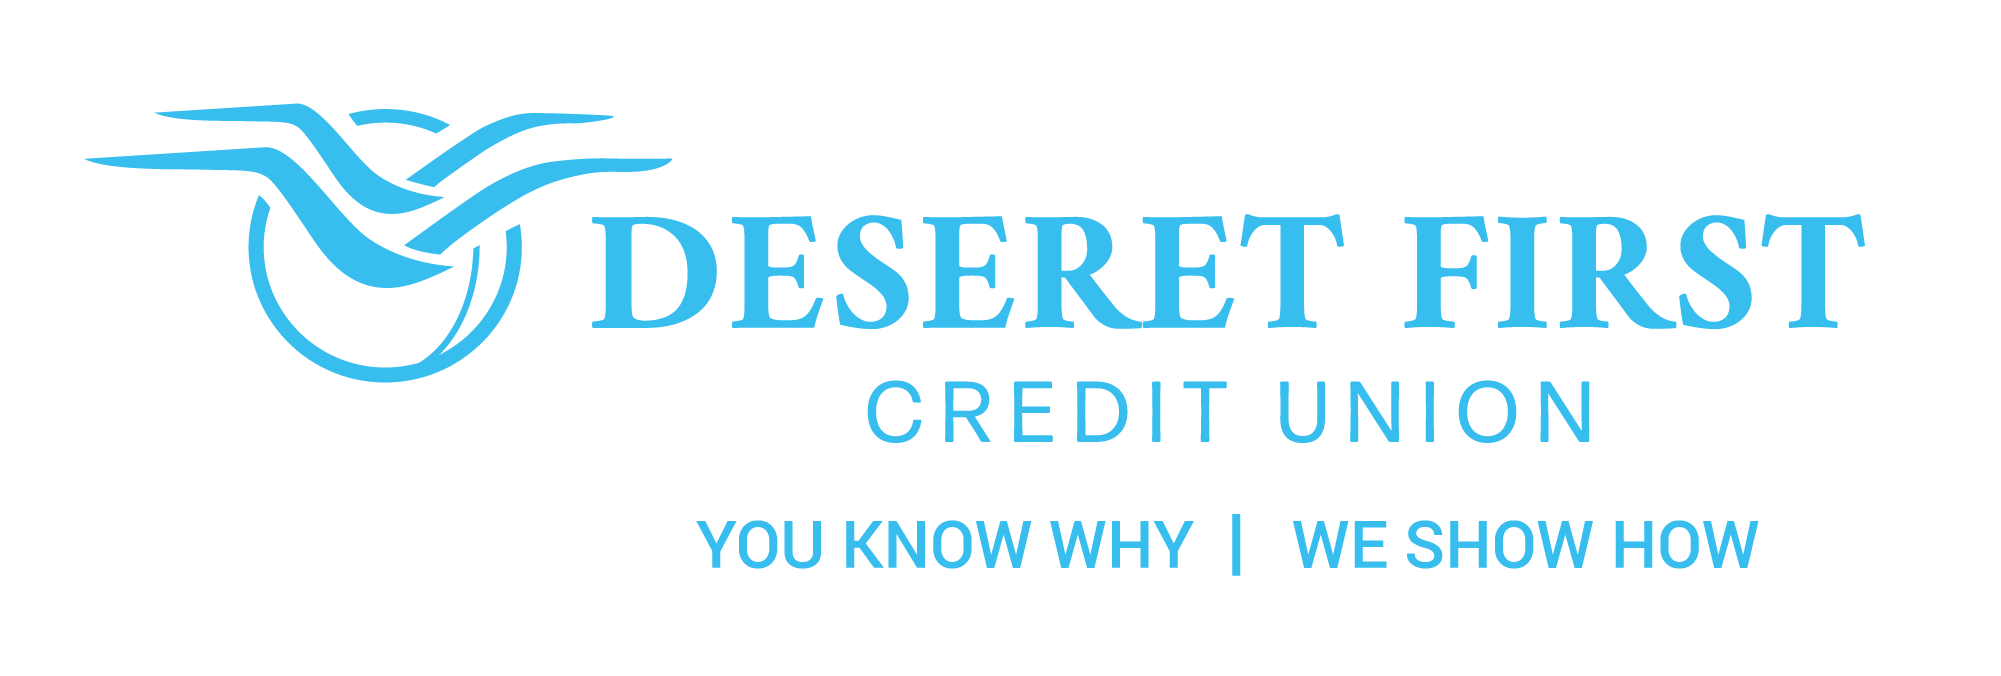 Deseret First Credit Union Company Logo